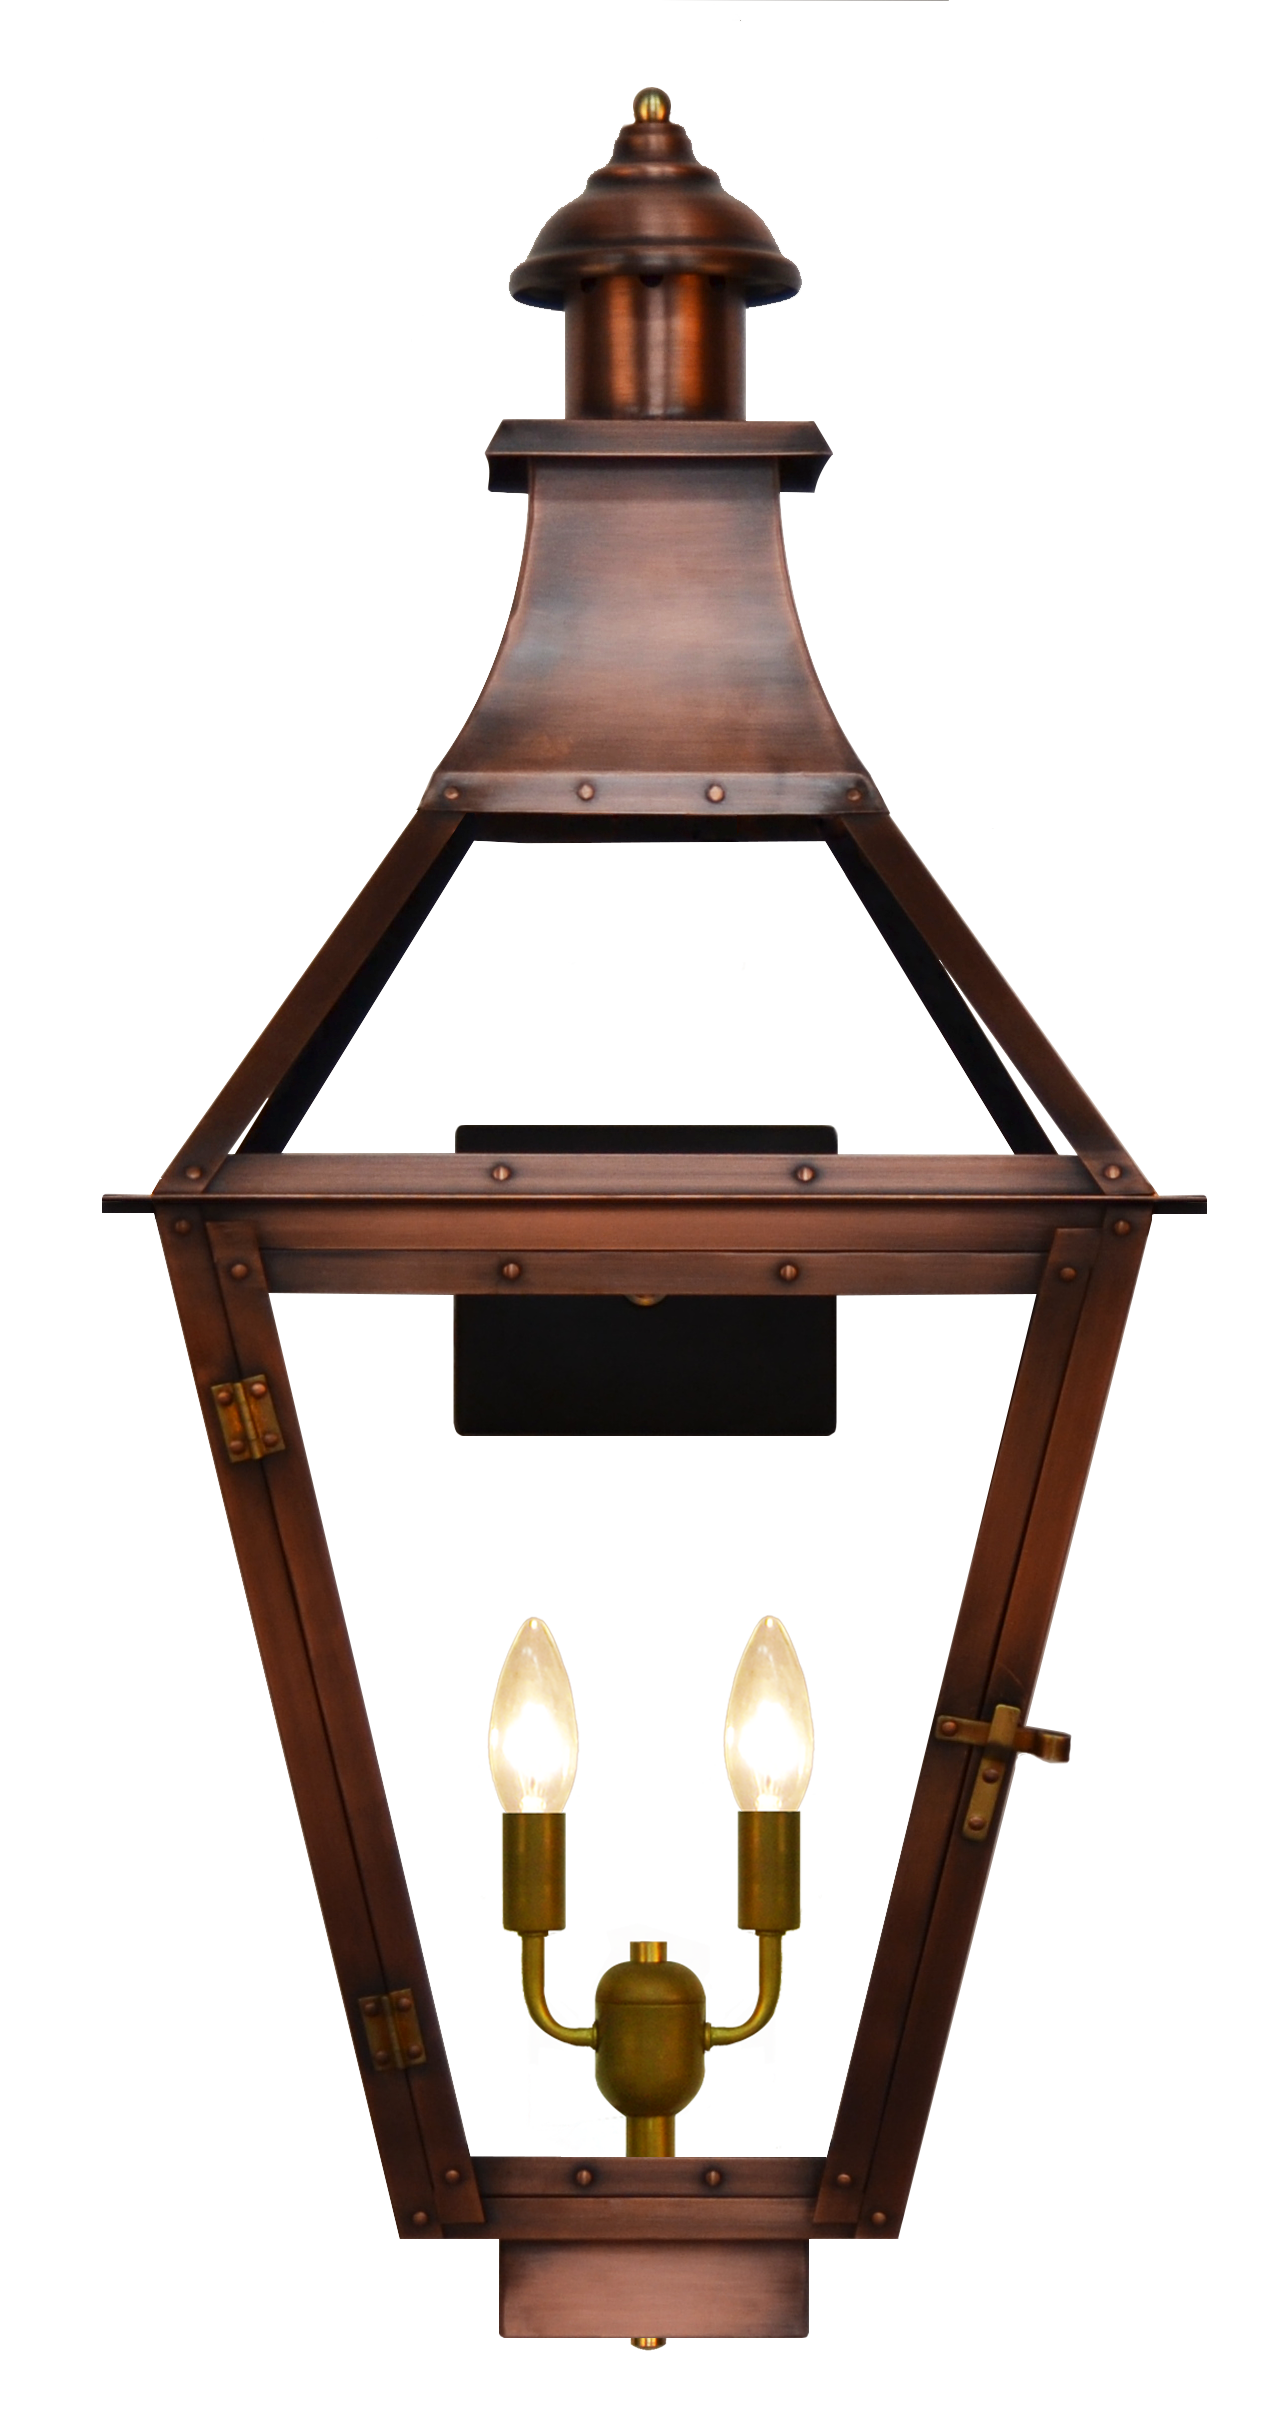 The CopperSmith Creole Gas and Electric Lantern Creole Gas and Electric Copper LanetrnsCR Creole  sc 1 st  Gas Copper Lanterns & The CopperSmith Creole Gas and Electric Lantern Creole Gas and ...